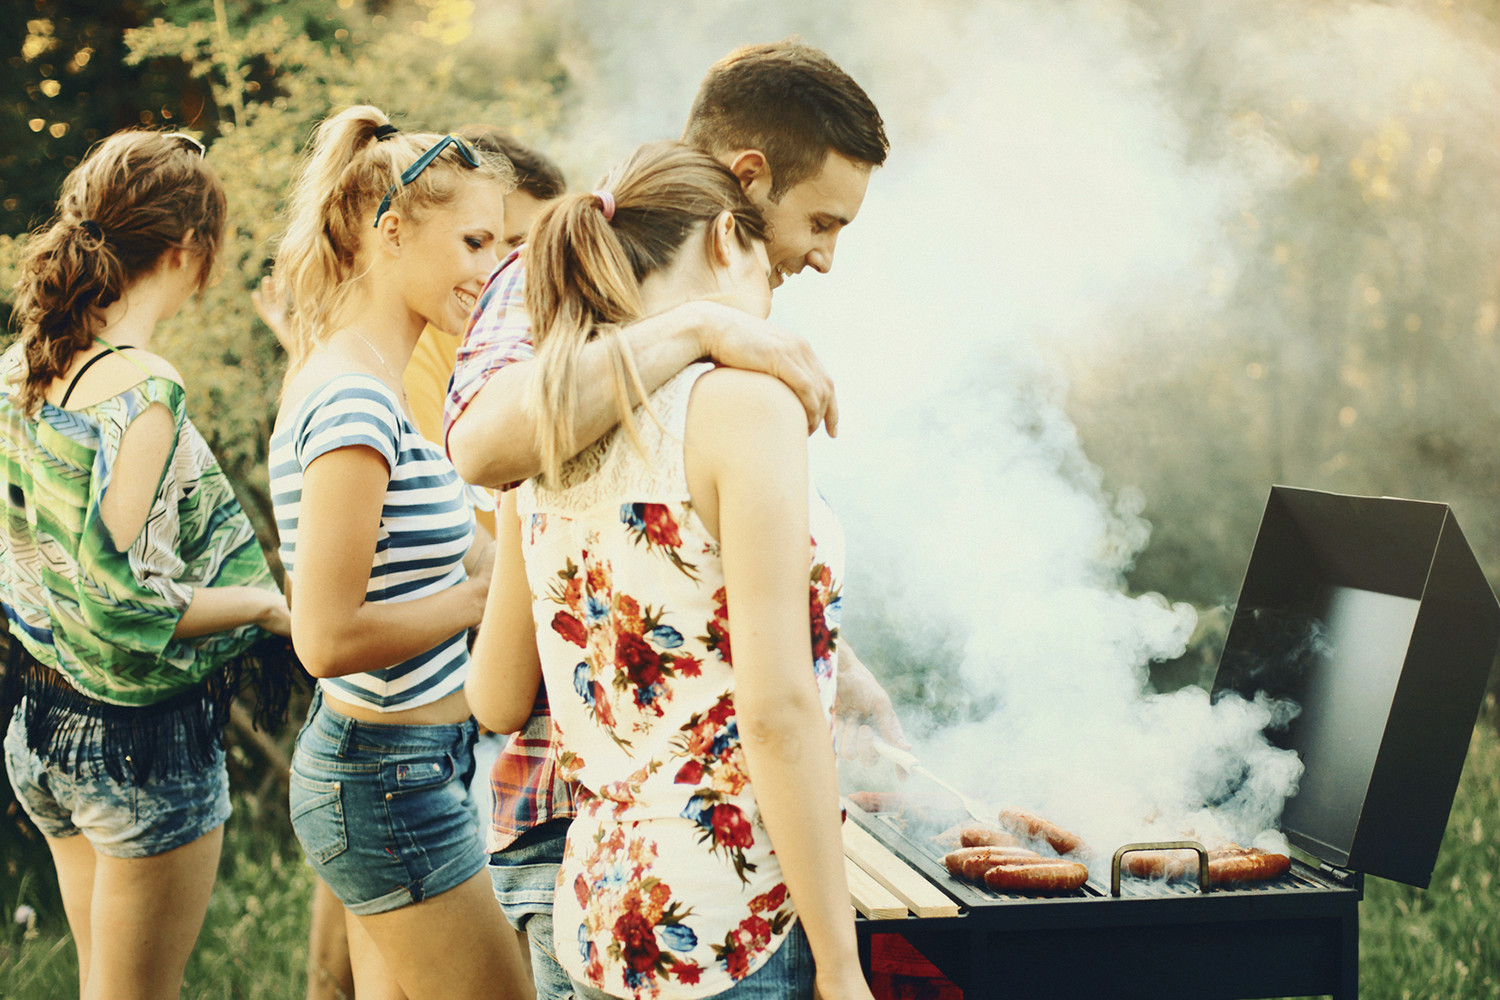 Avoiding Grilling Injuries